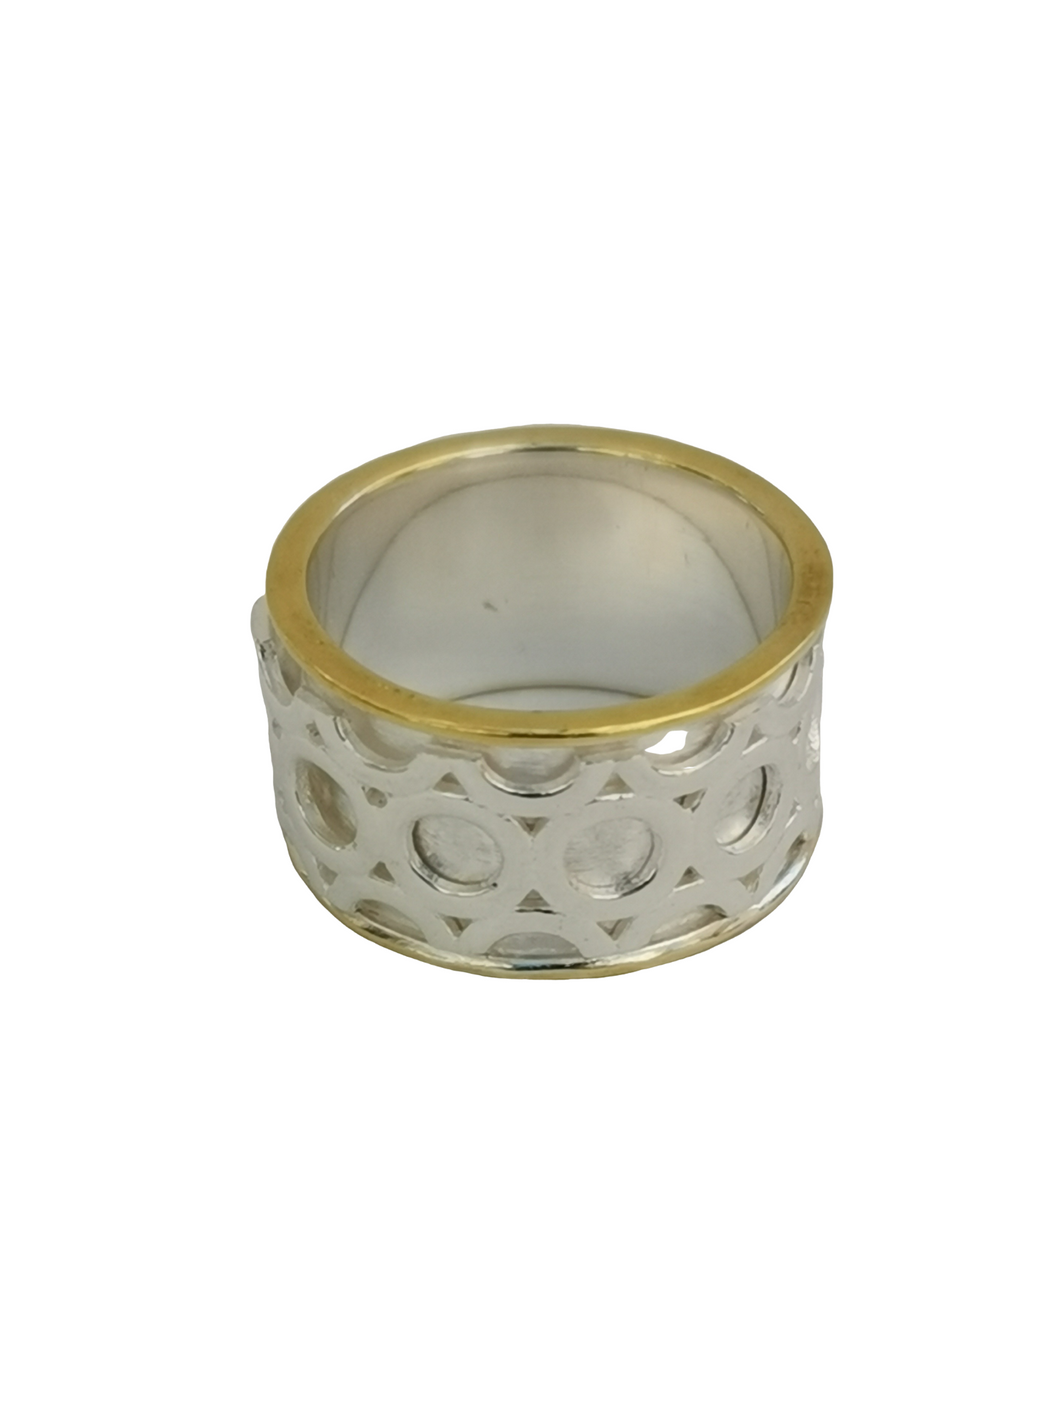 925 Sterling Silver Spinning Ring (Worry Ring) - Silver Ring with Brass Plate Edges & Wide Silver Circles Spinning Band